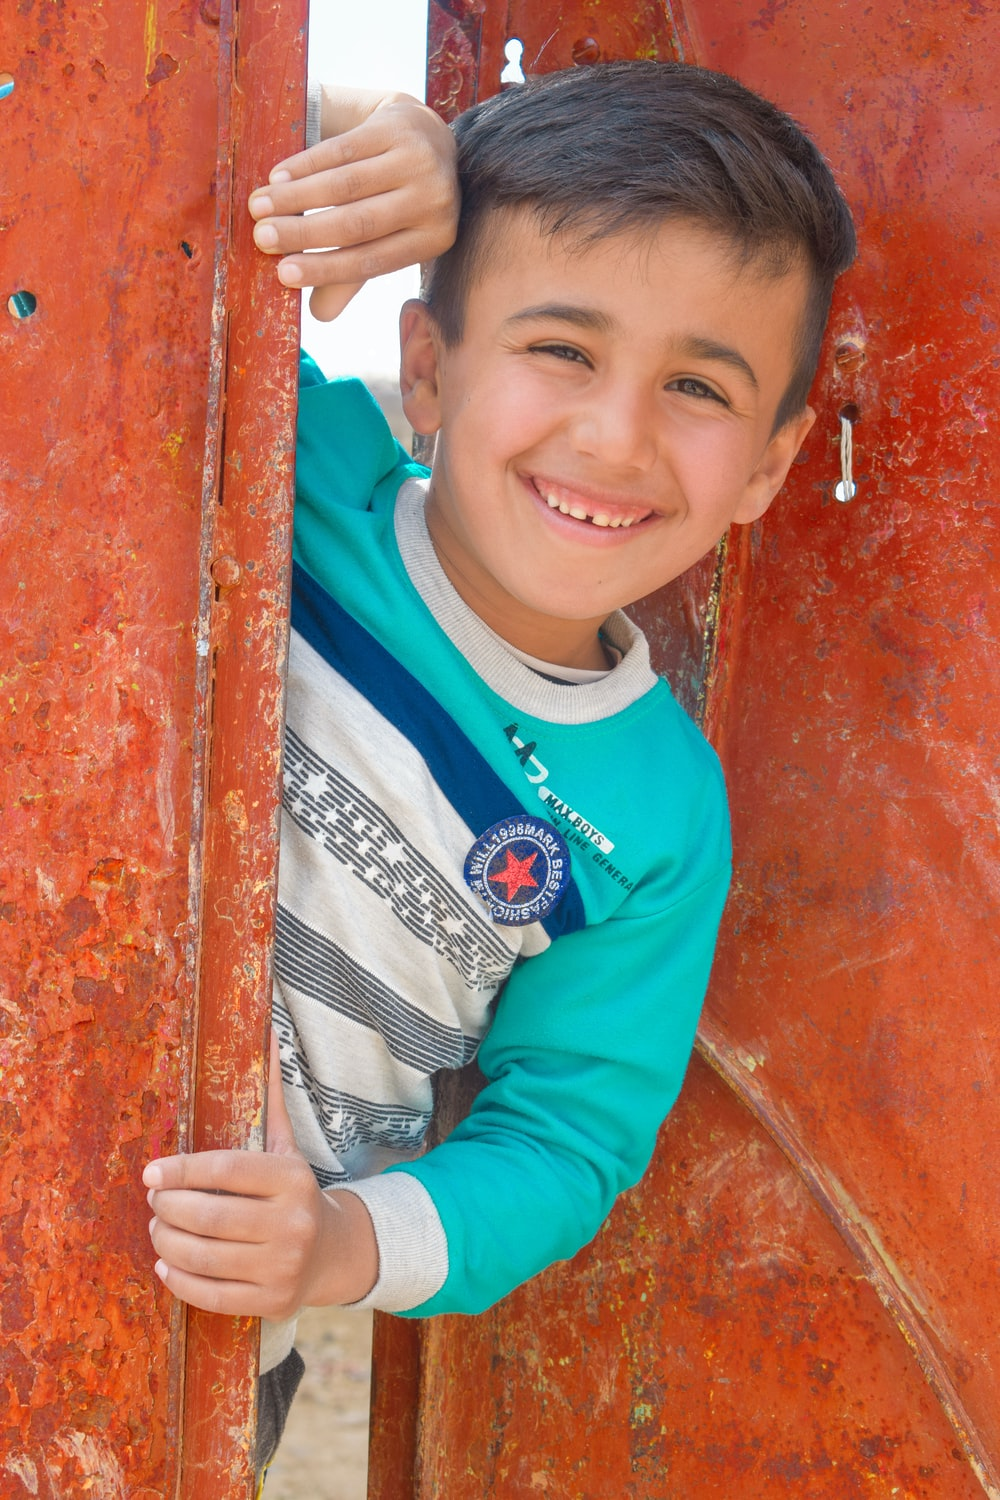 boy in red and blue long sleeve shirt smiling